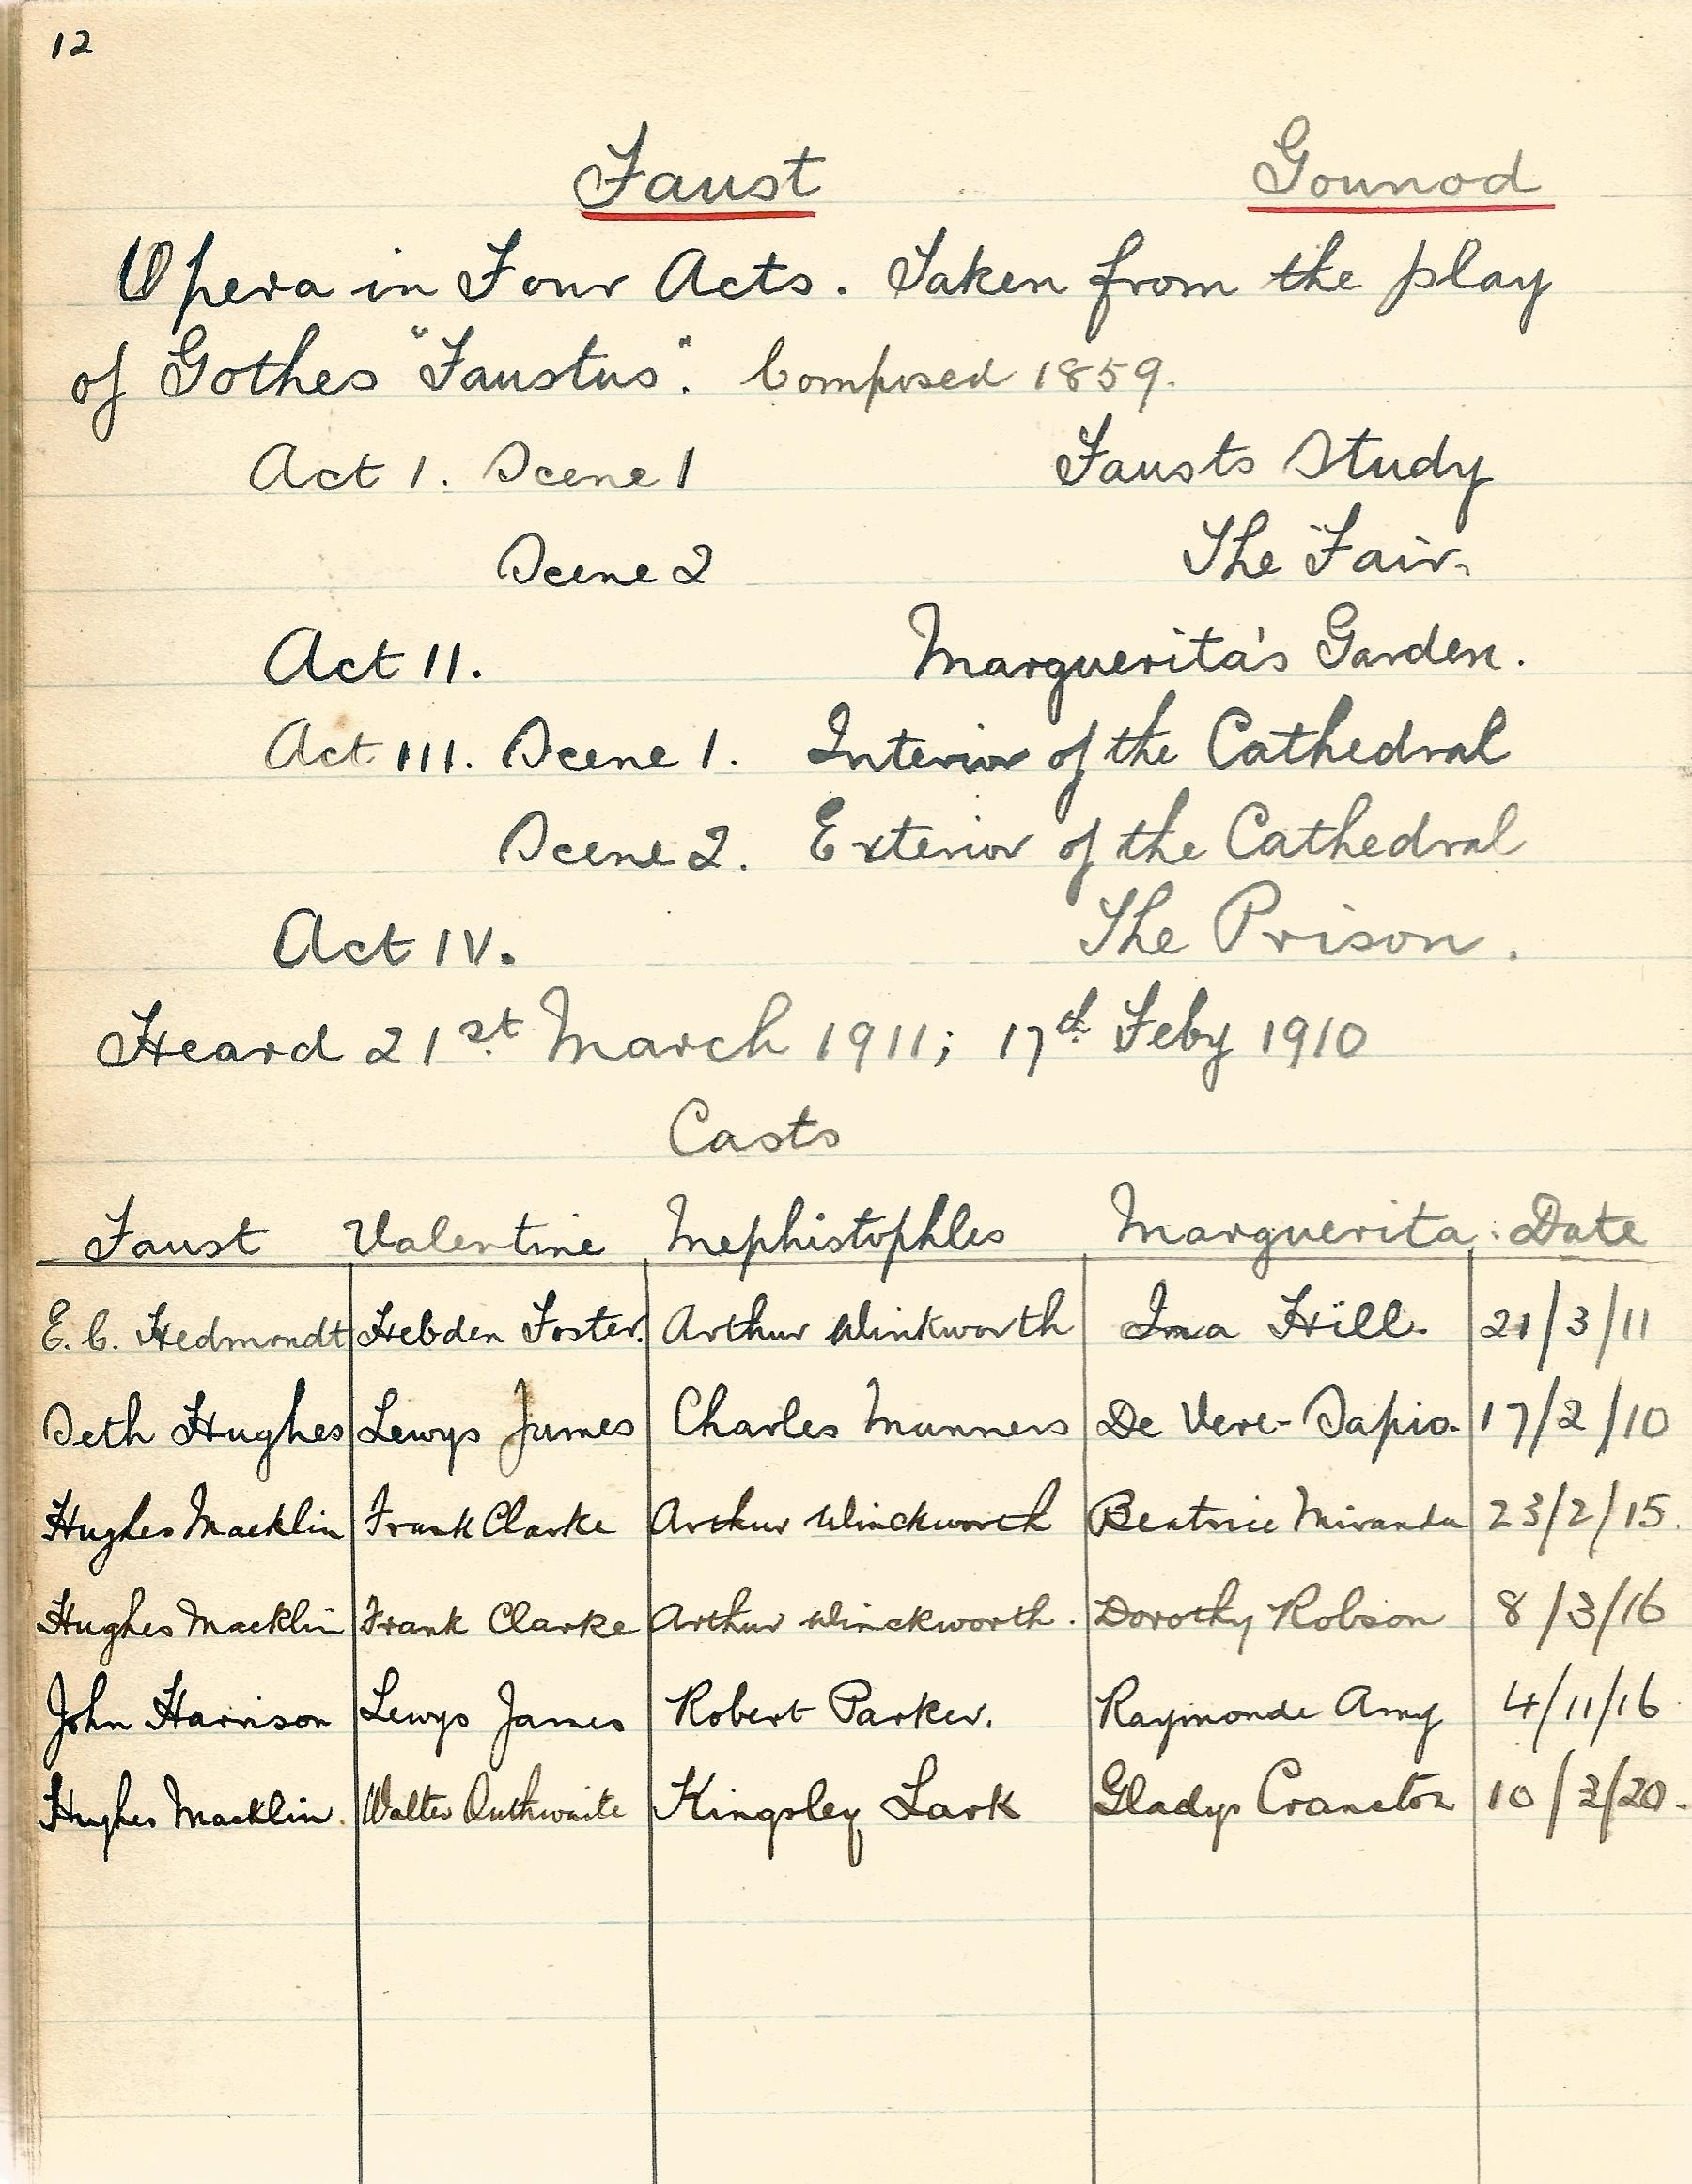 Diary Notebook of Music Opera, Pianists, Violinists, Vocalists, Organists, Operas & Orchestras - Image 4 of 6